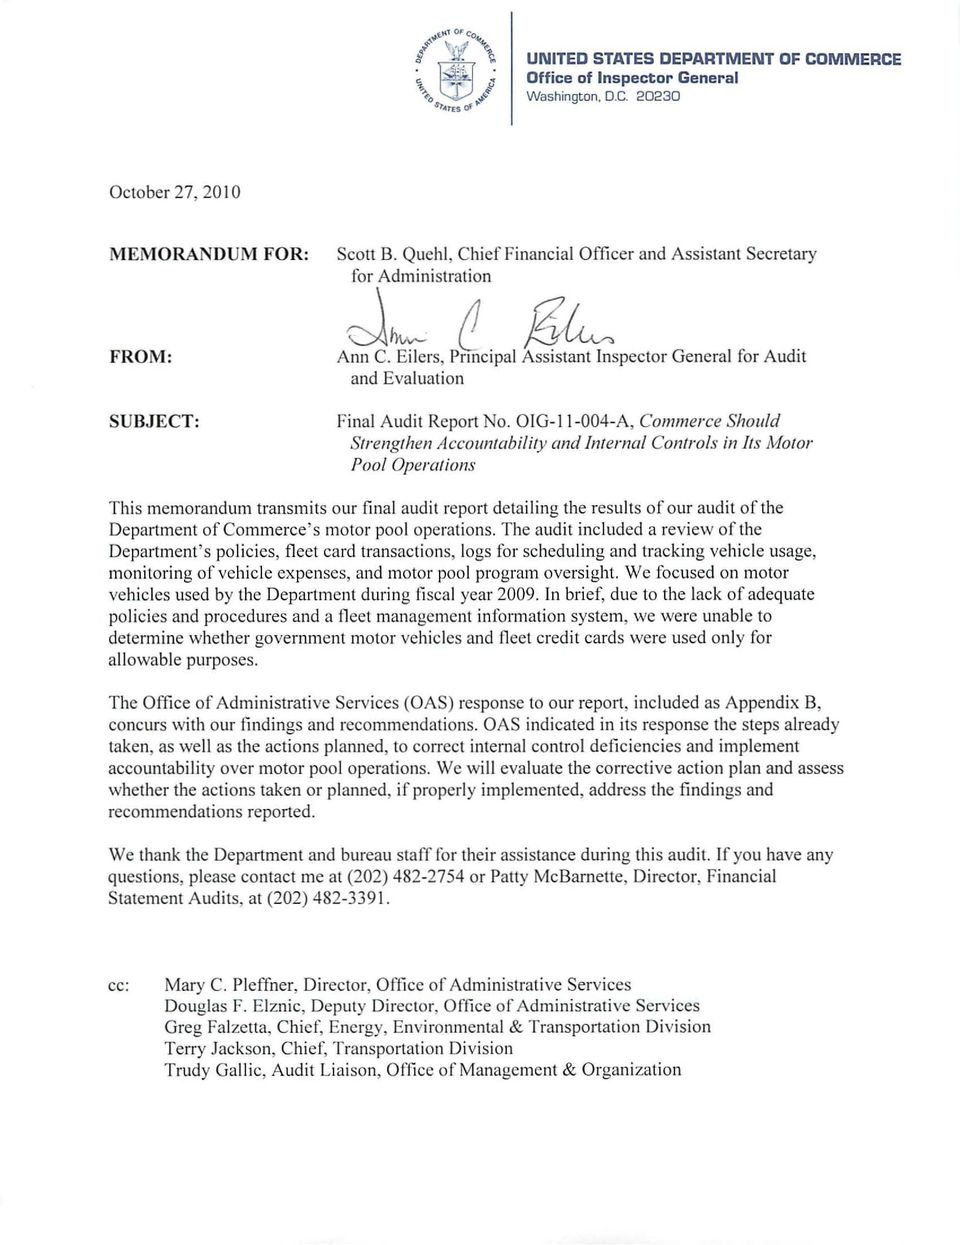 OIG-II-004-A, Commerce Should Strengthen Accountability and Interned Controls in Its Motor Pool Operations This memorandum transmits our final audit report detailing the results of our audit of the